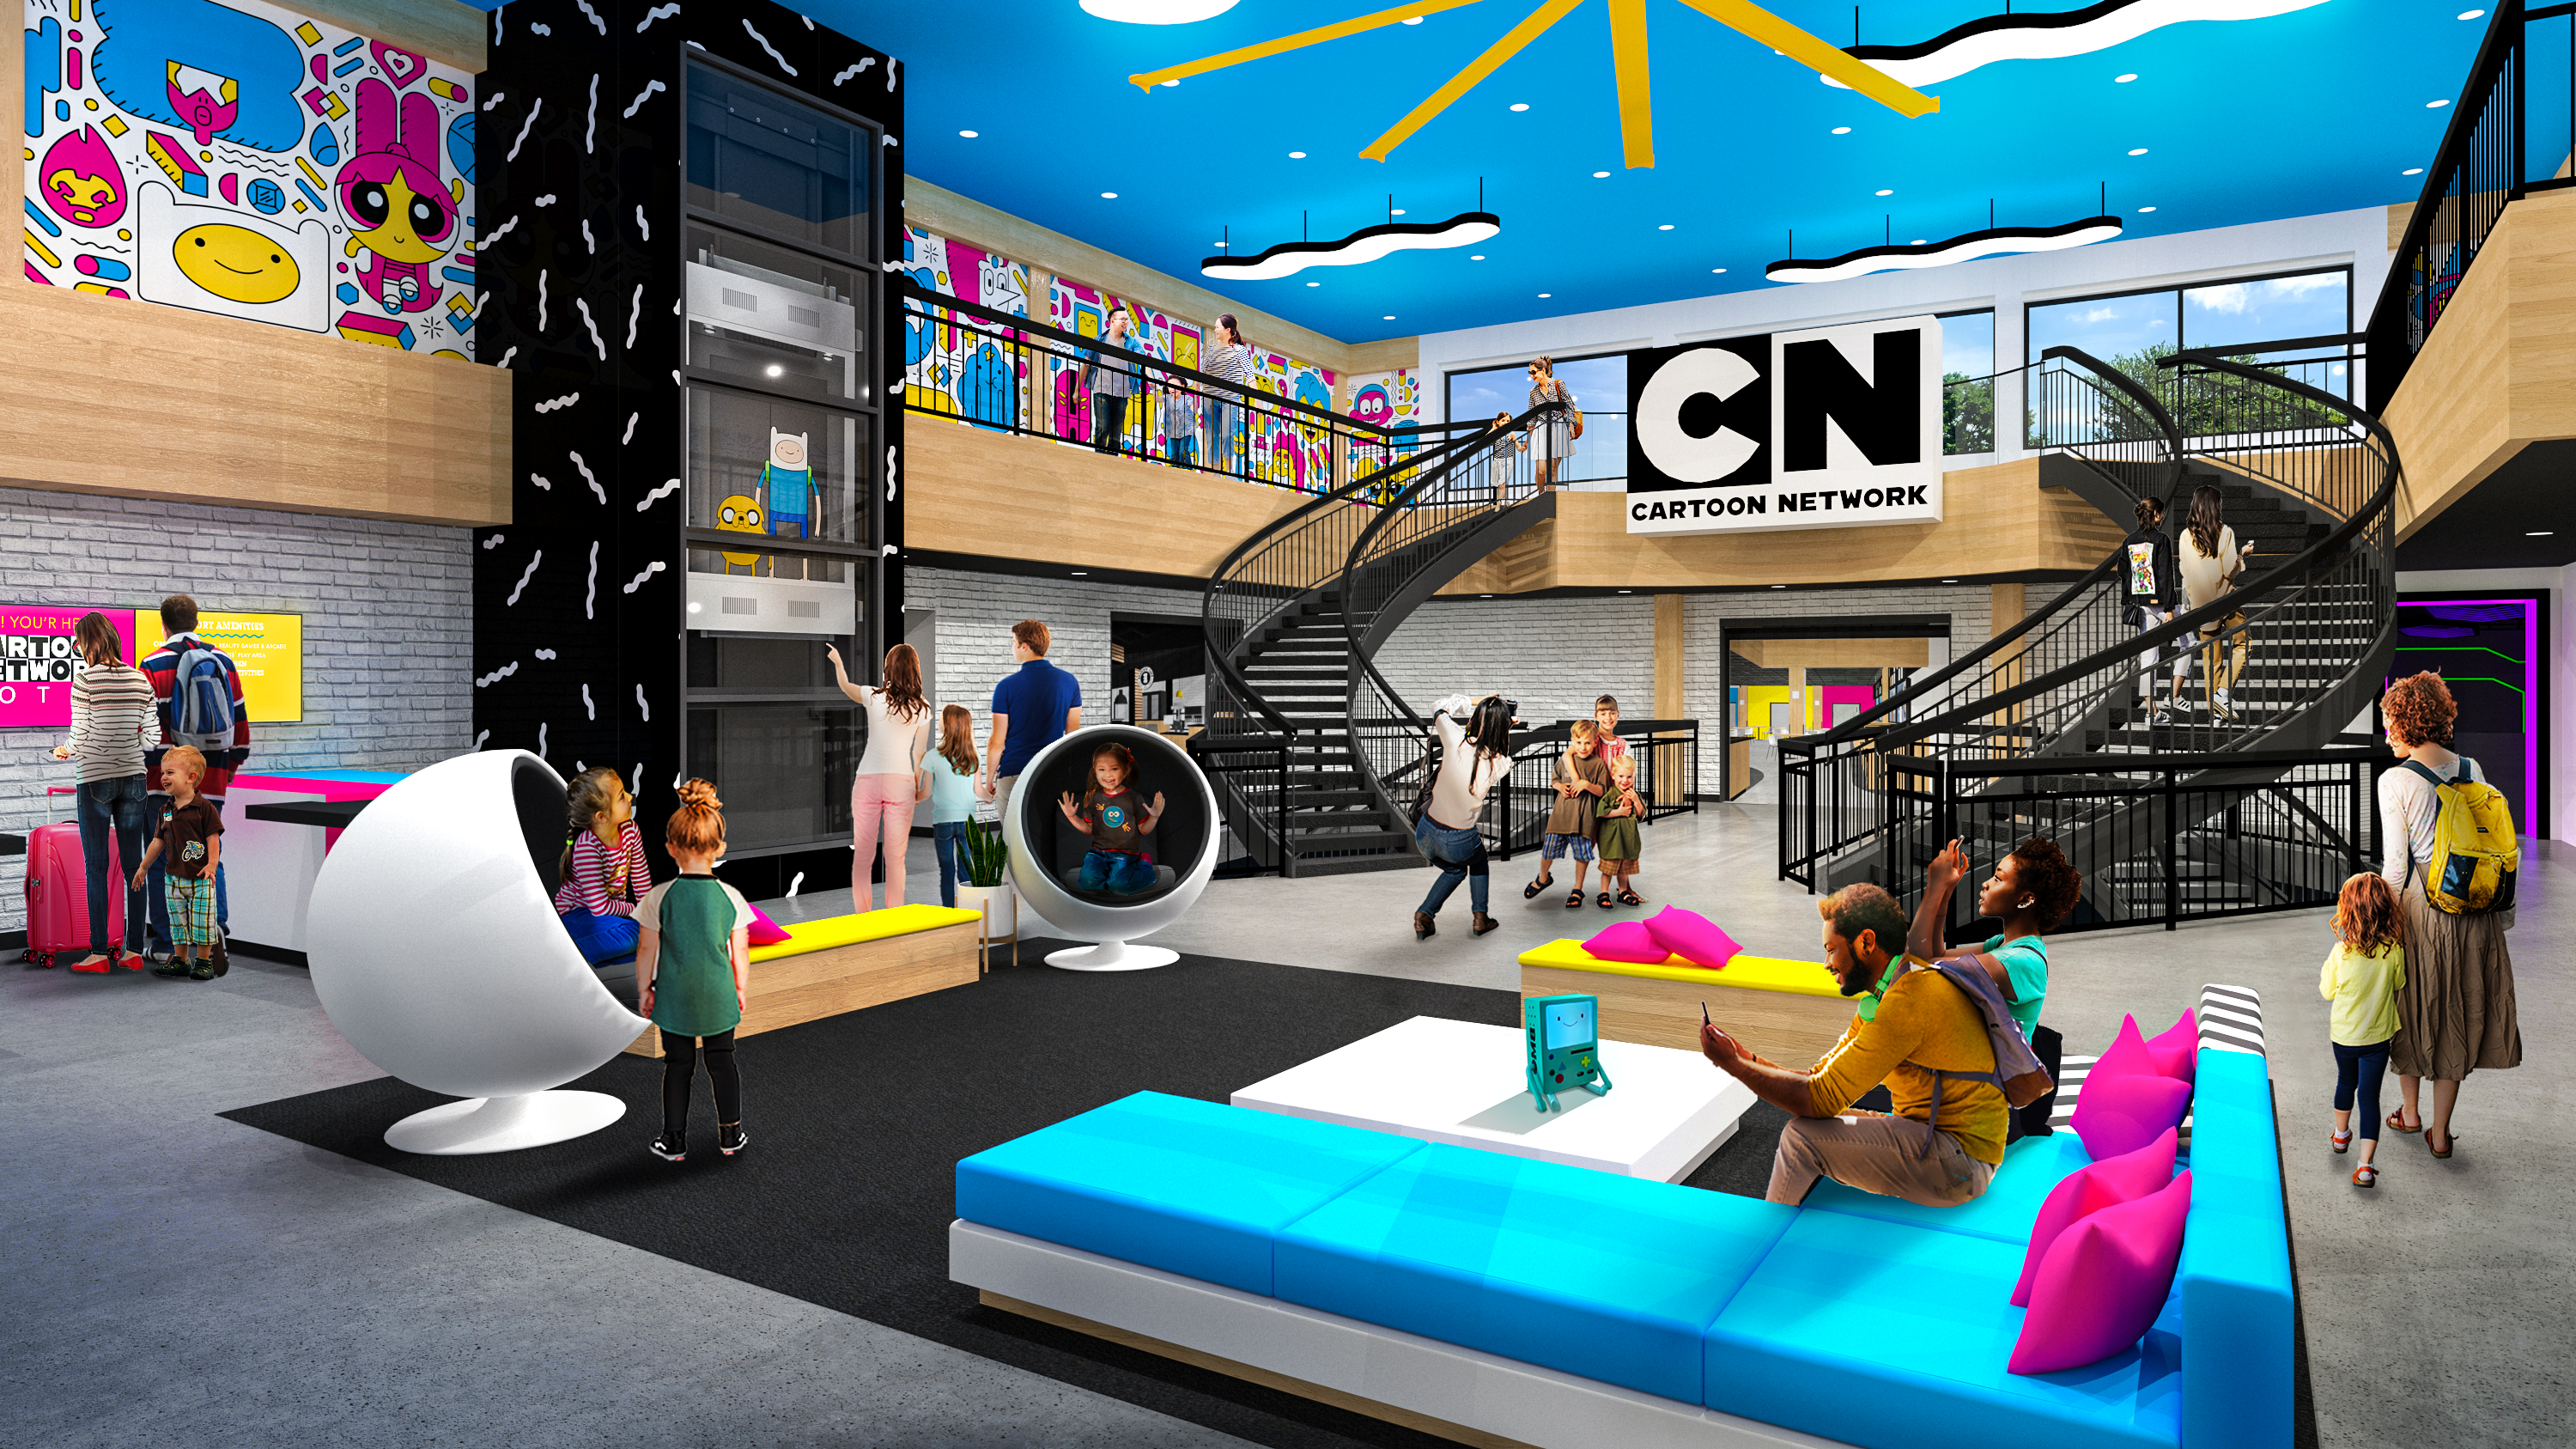 Rendering of the lobby of the Cartoon Network Hotel